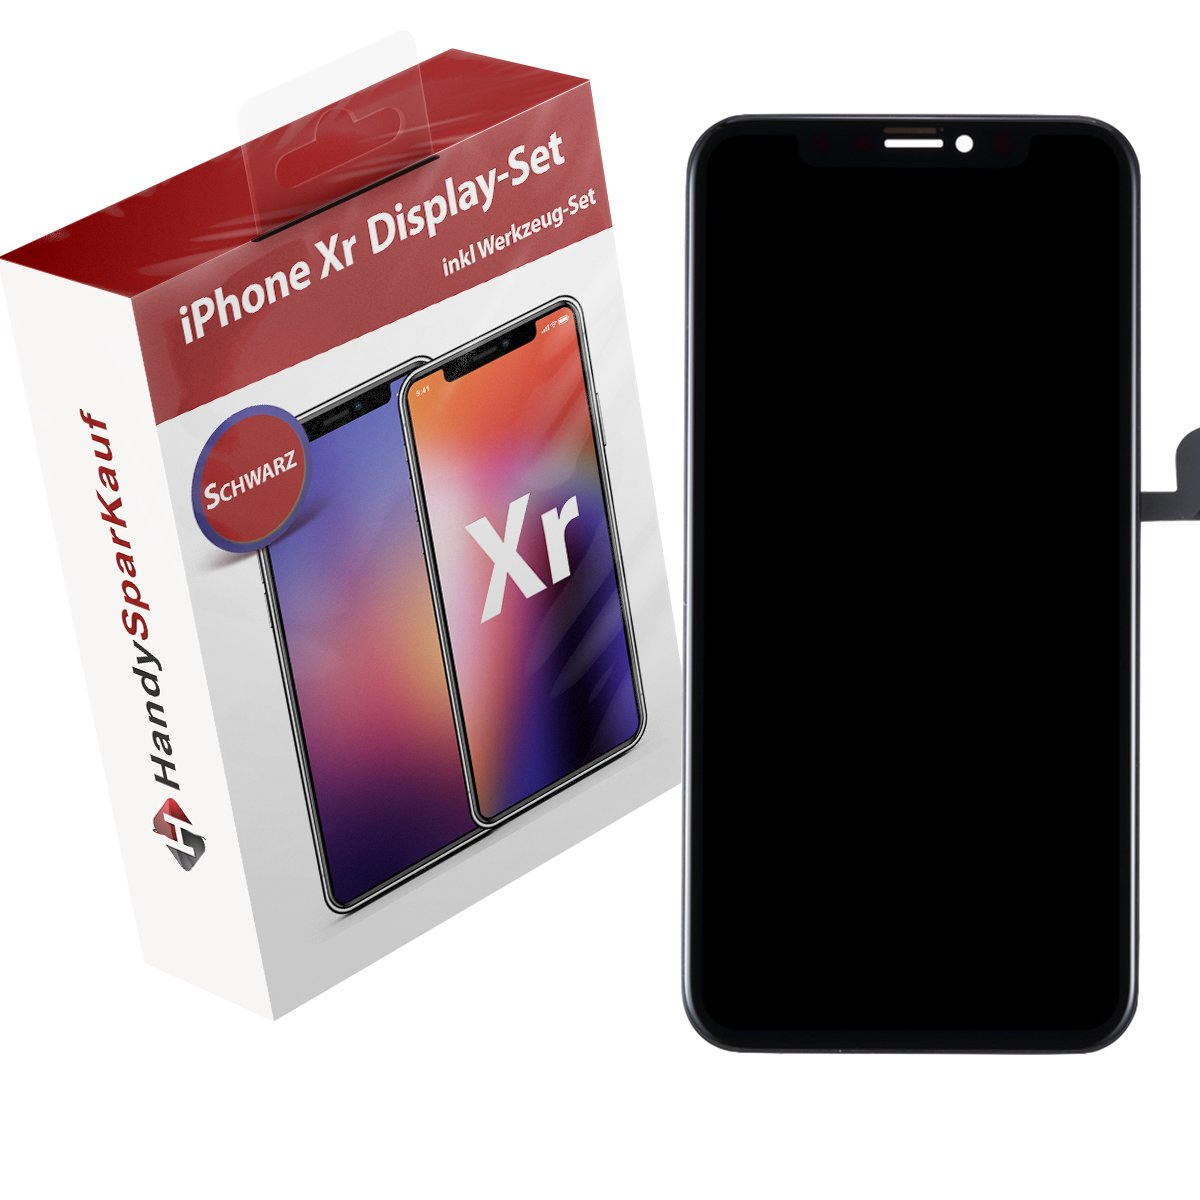 iPhone XR Display Schwarz